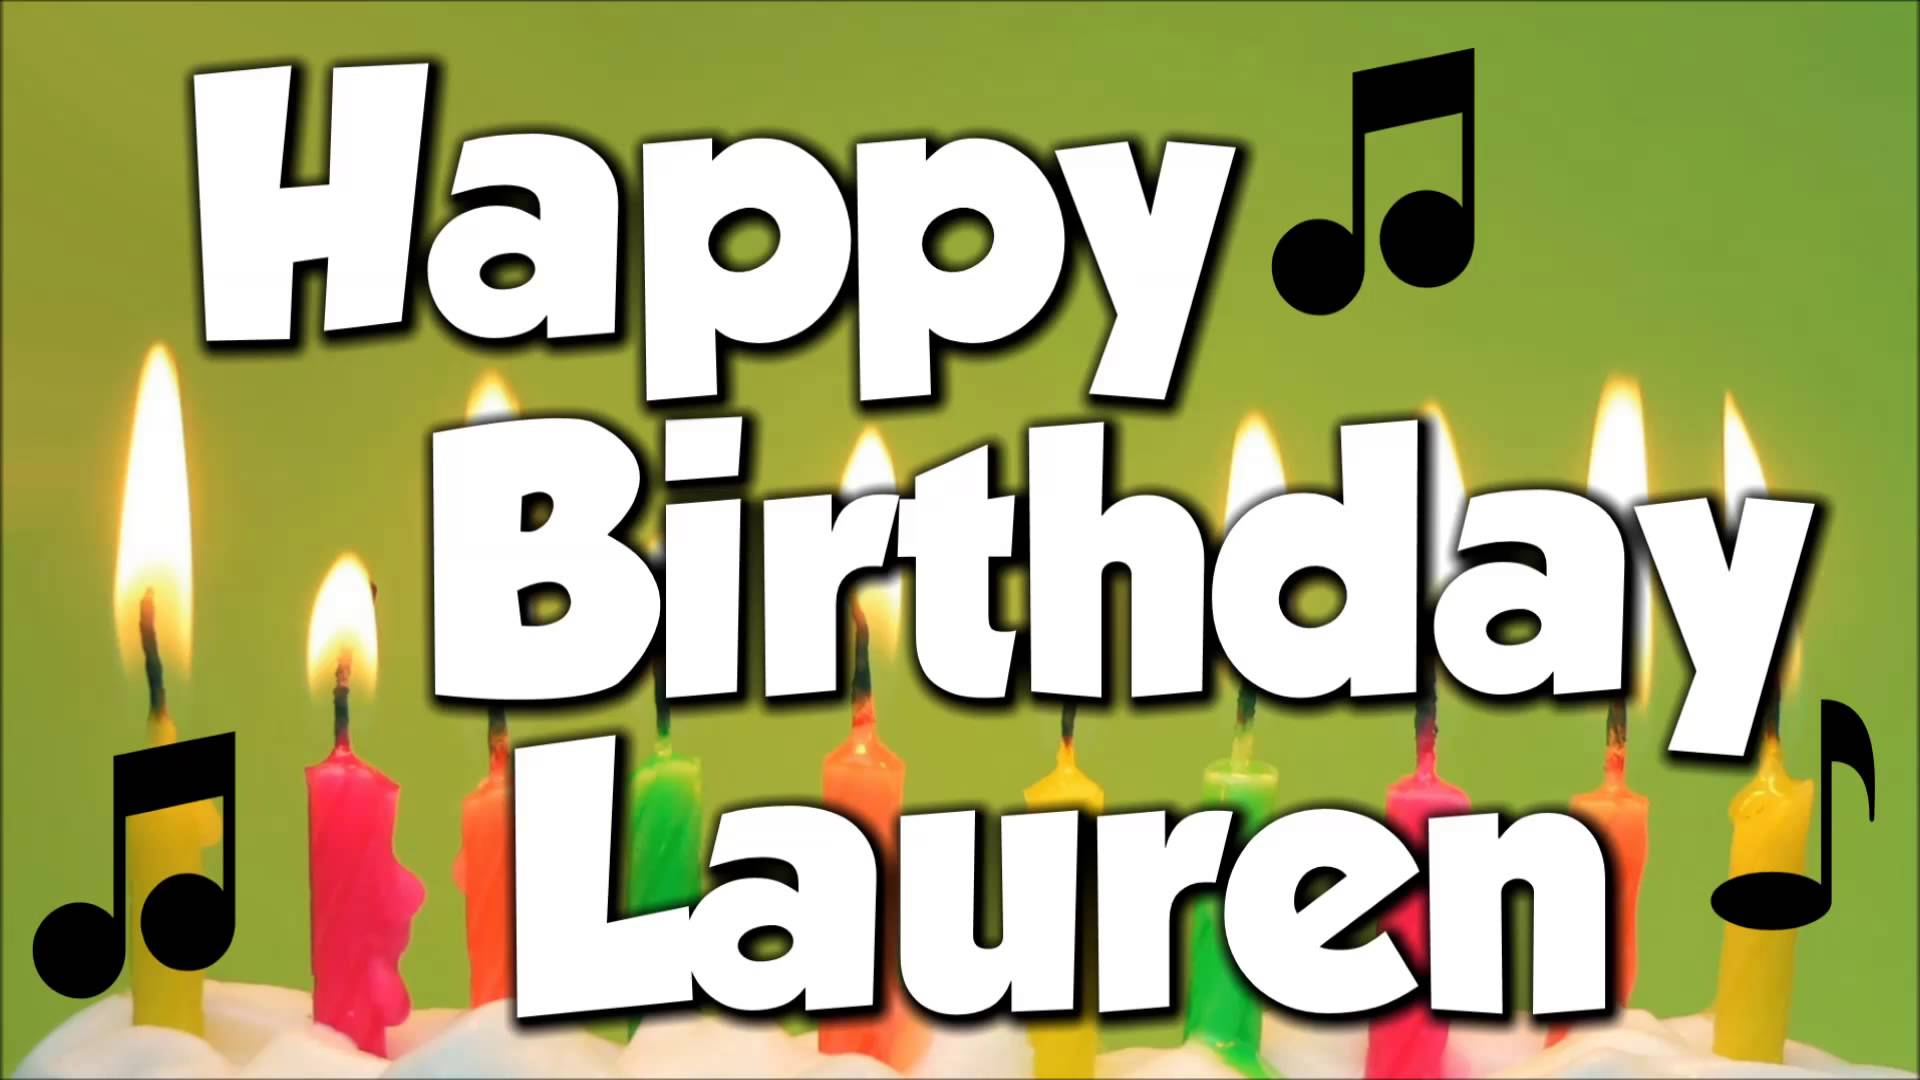 happy birthday lauren ; maxresdefault